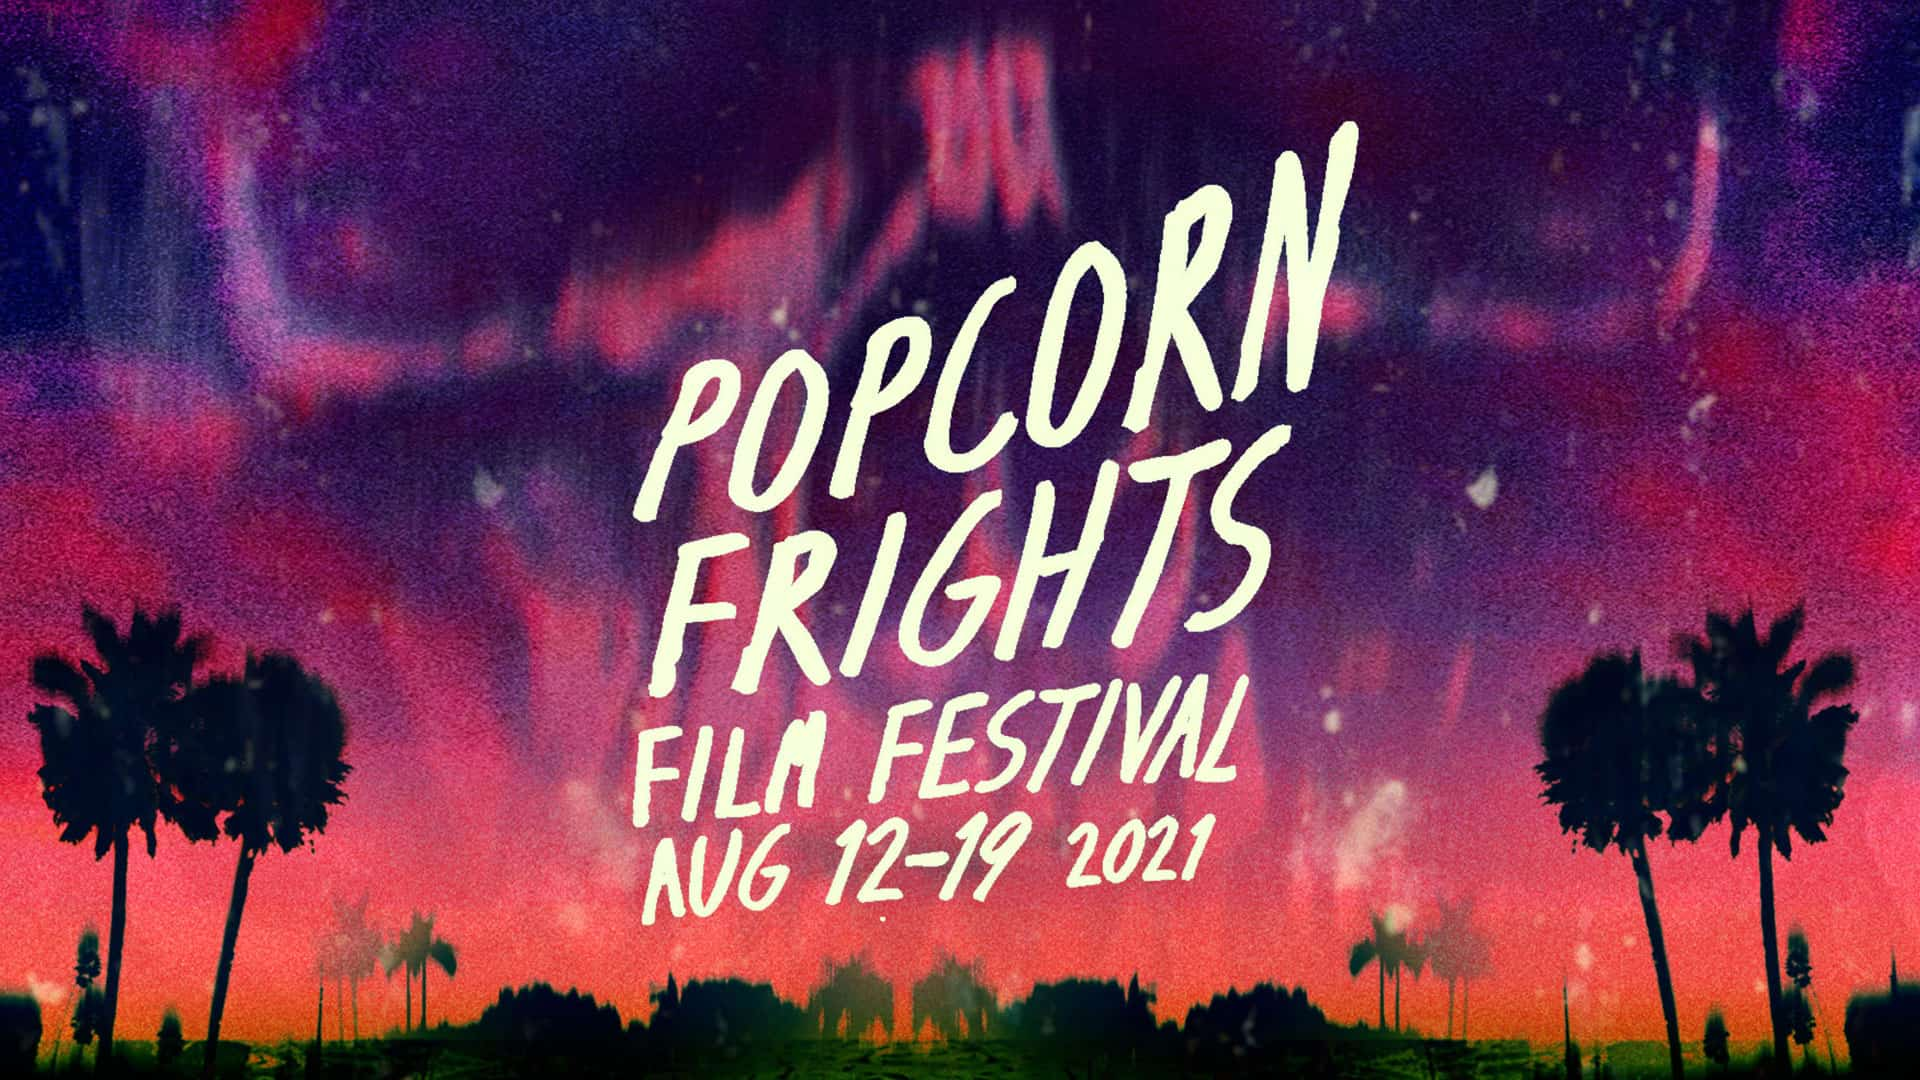 Popcorn Frights is Going Live in 2021!  The First Wave Lineup of In-Theater Features has been Announced.